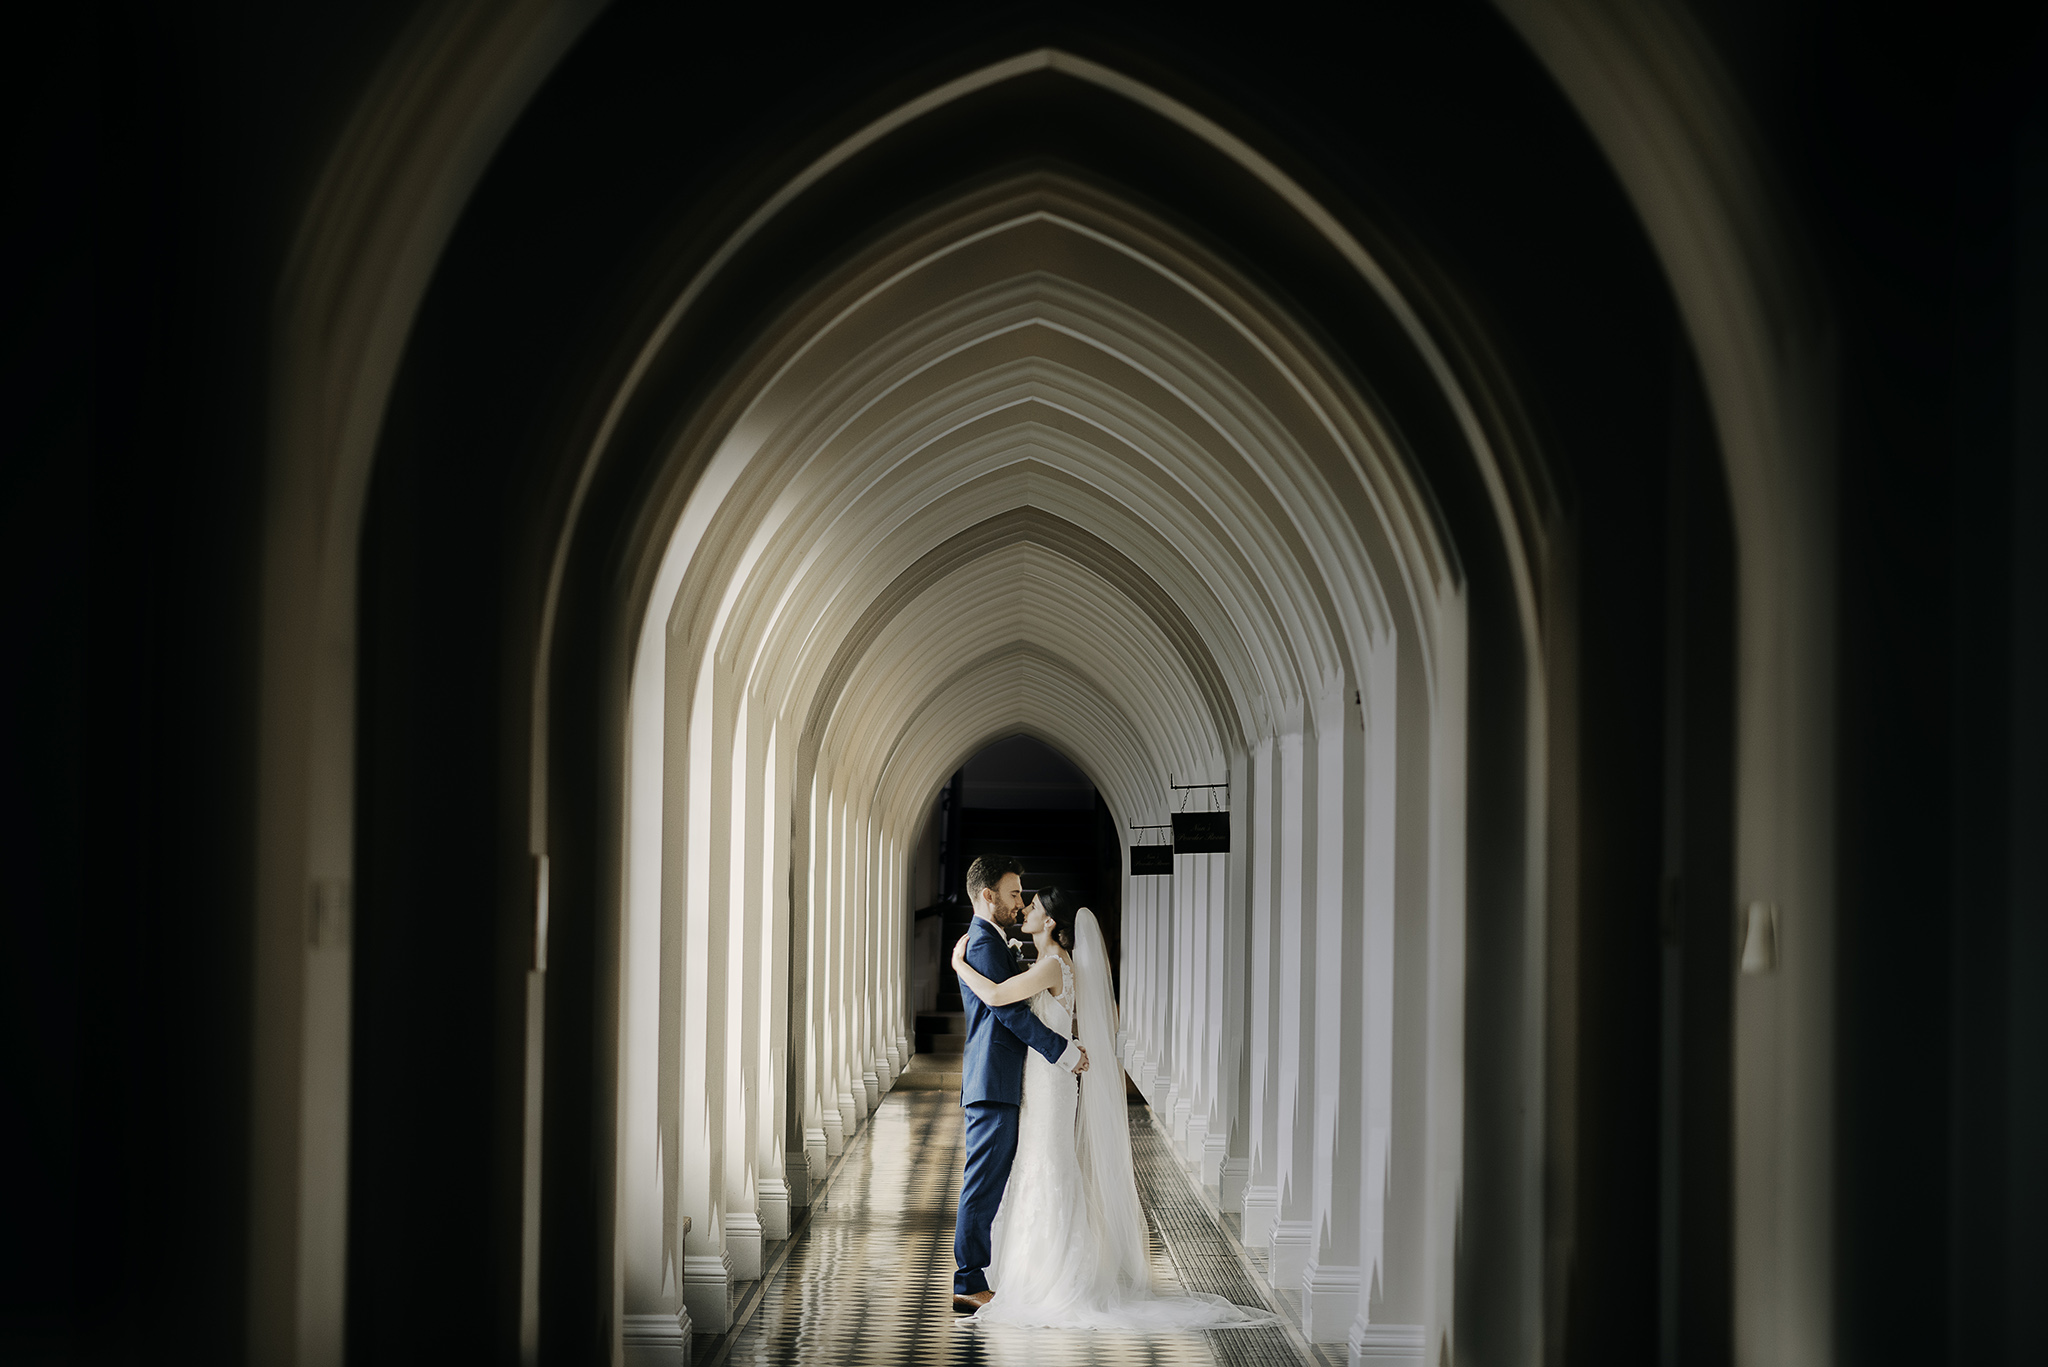 lizzie-dan-stanbrook-abbey-wedding-Scott-stockwell-photography-wedding-photographer-malvern-worcestershire.jpg